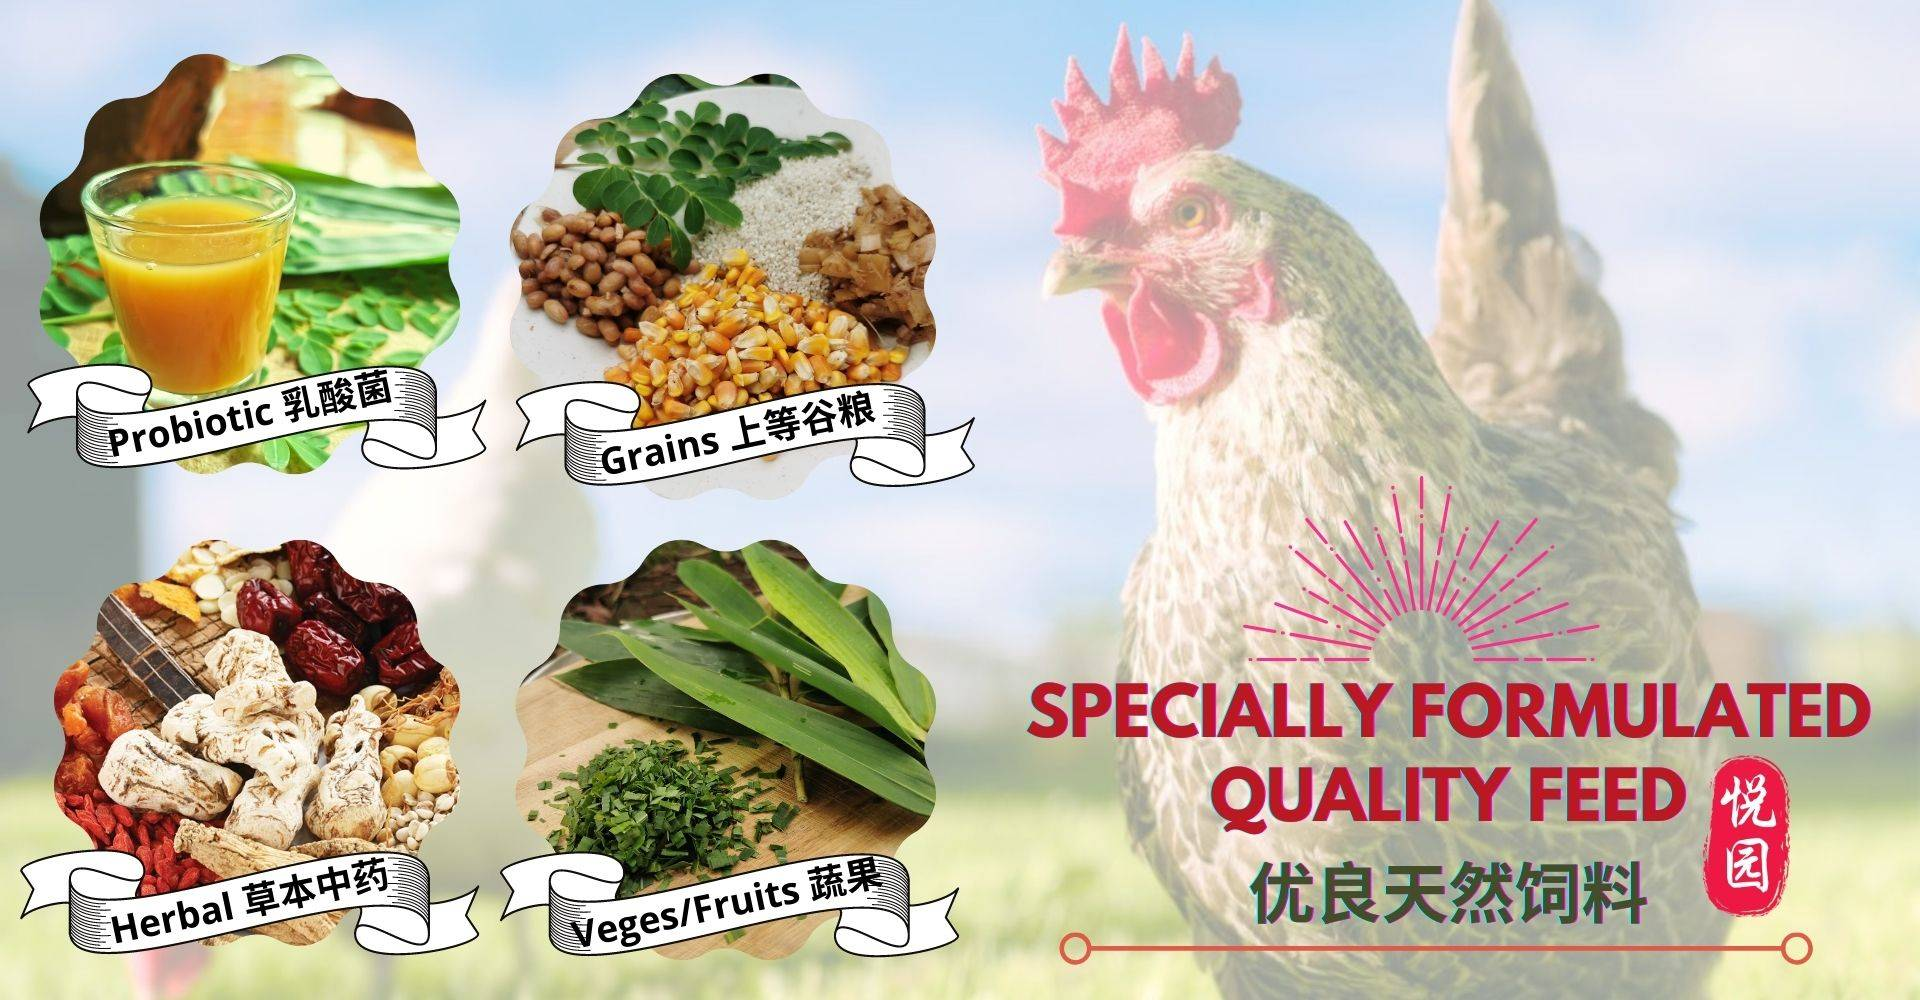 Special Formulated Quality Feed